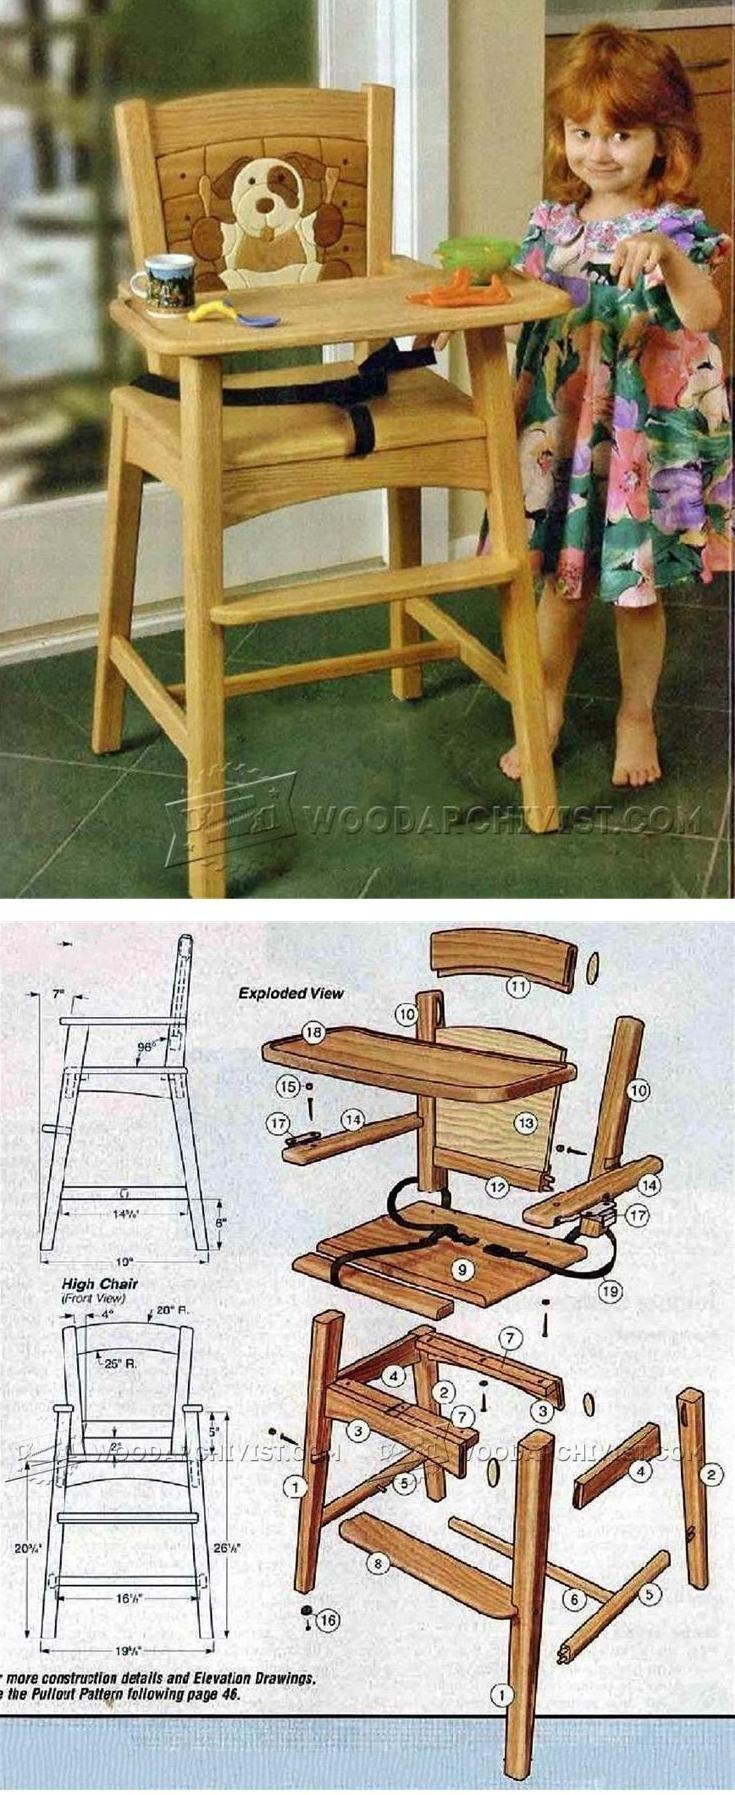 Painted wooden high chair - Wooden High Chair Plans Children S Furniture Plans And Projects Woodarchivist Com